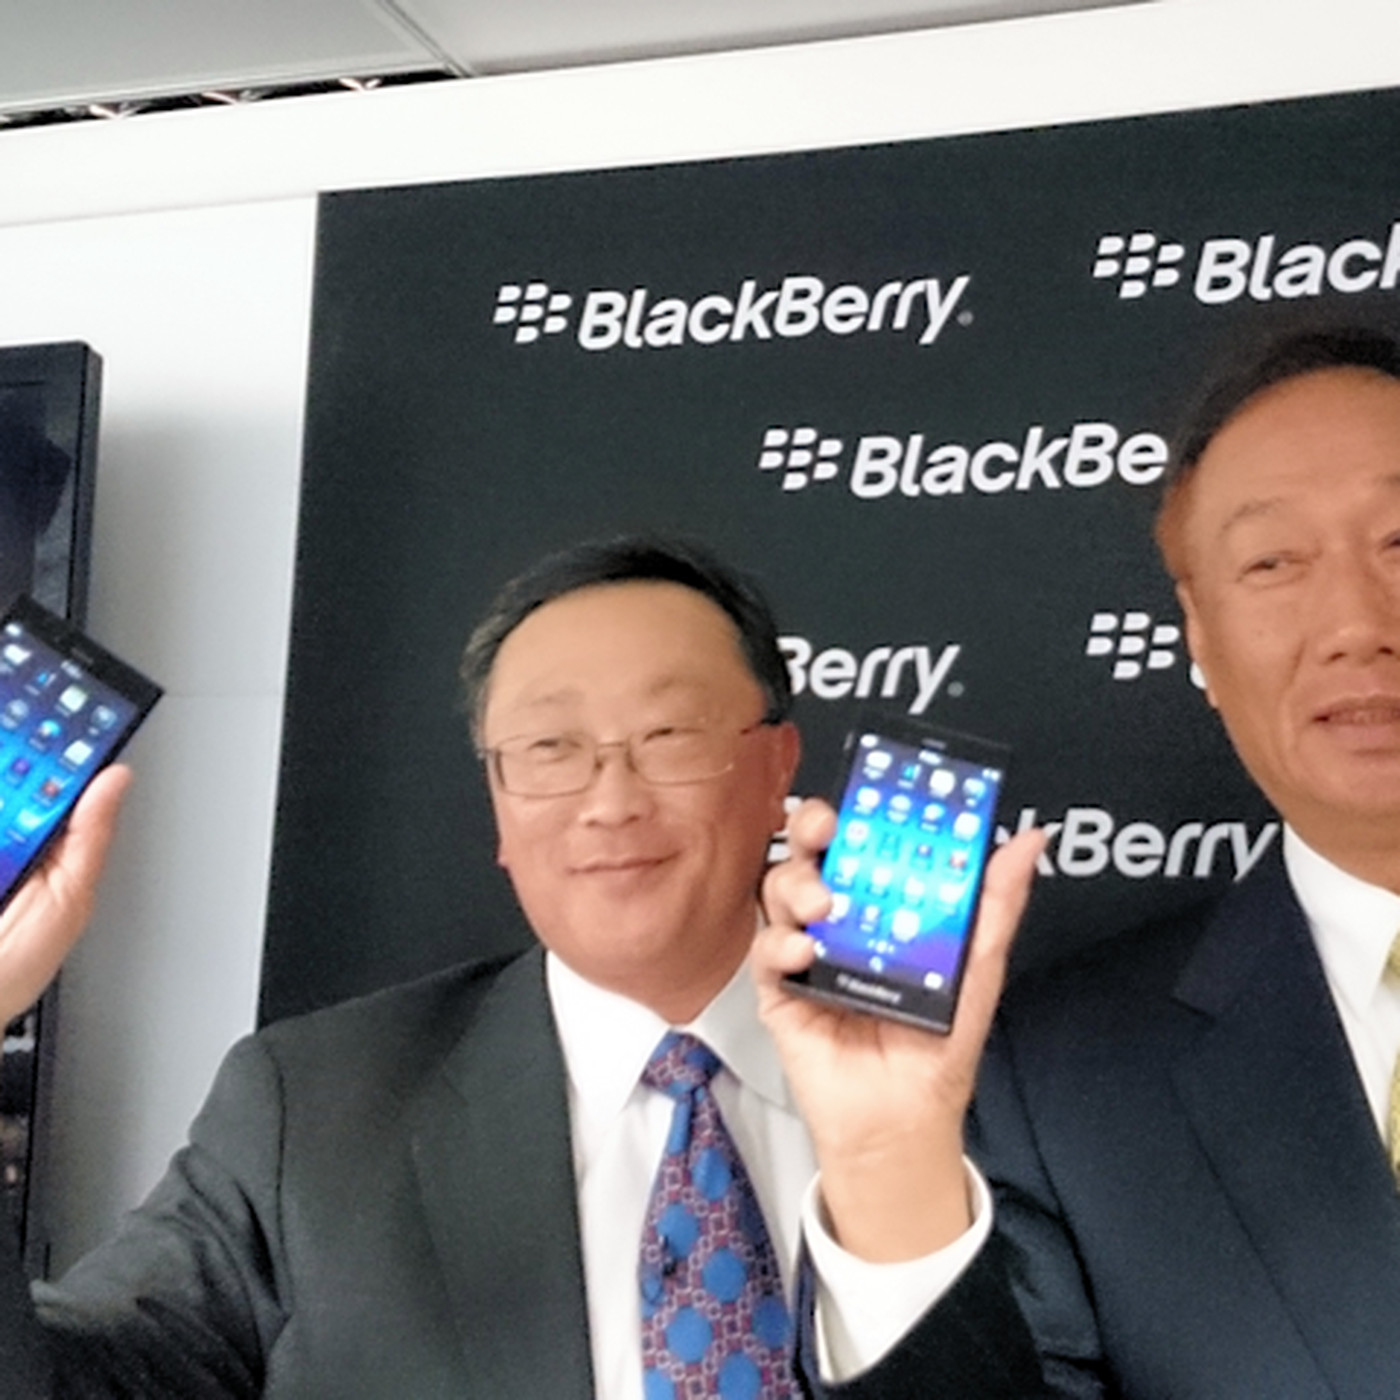 Blackberry Ceo John Chen Talks Up Q20 And Z3 Phones Coming This Year Classic Black Recode